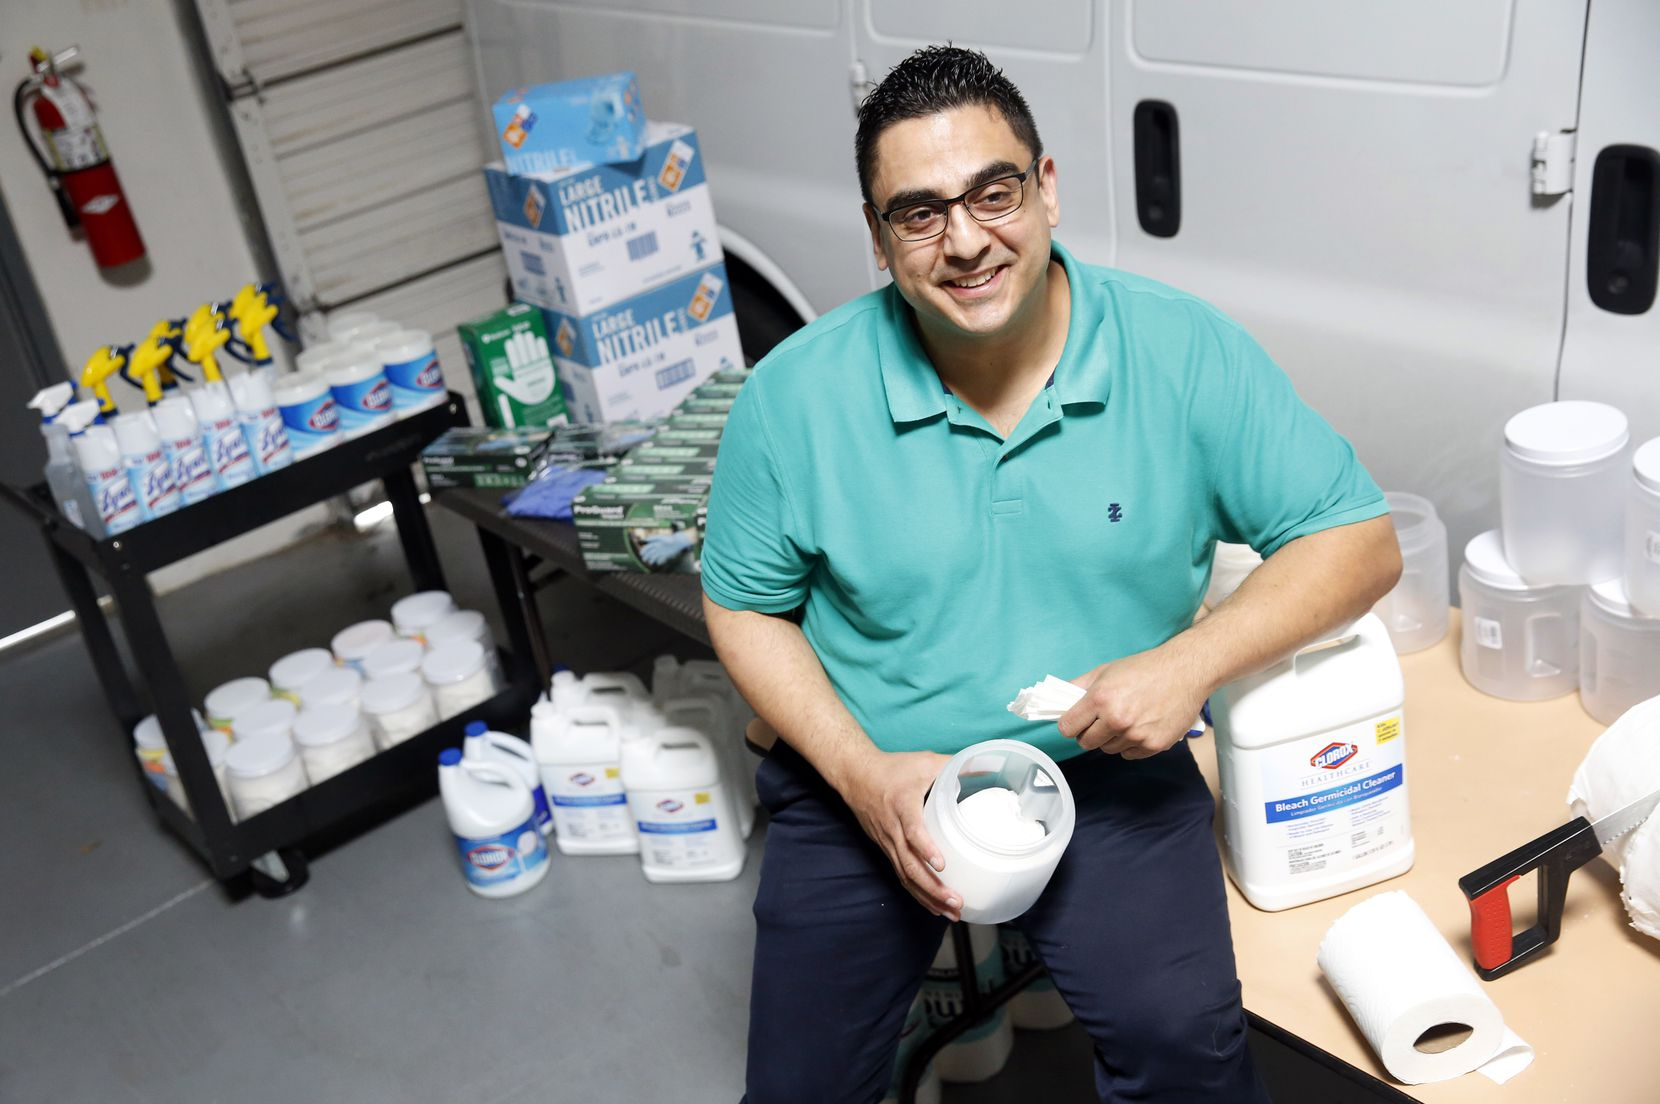 BCI Janitorial head of business development Oscar DeLeon is shown with some of the company's cleaning supplies and disinfectants. BCI Janitorial is a third-generation, family-owned small business that provides janitorial services to commercial clients from its Carrollton office.